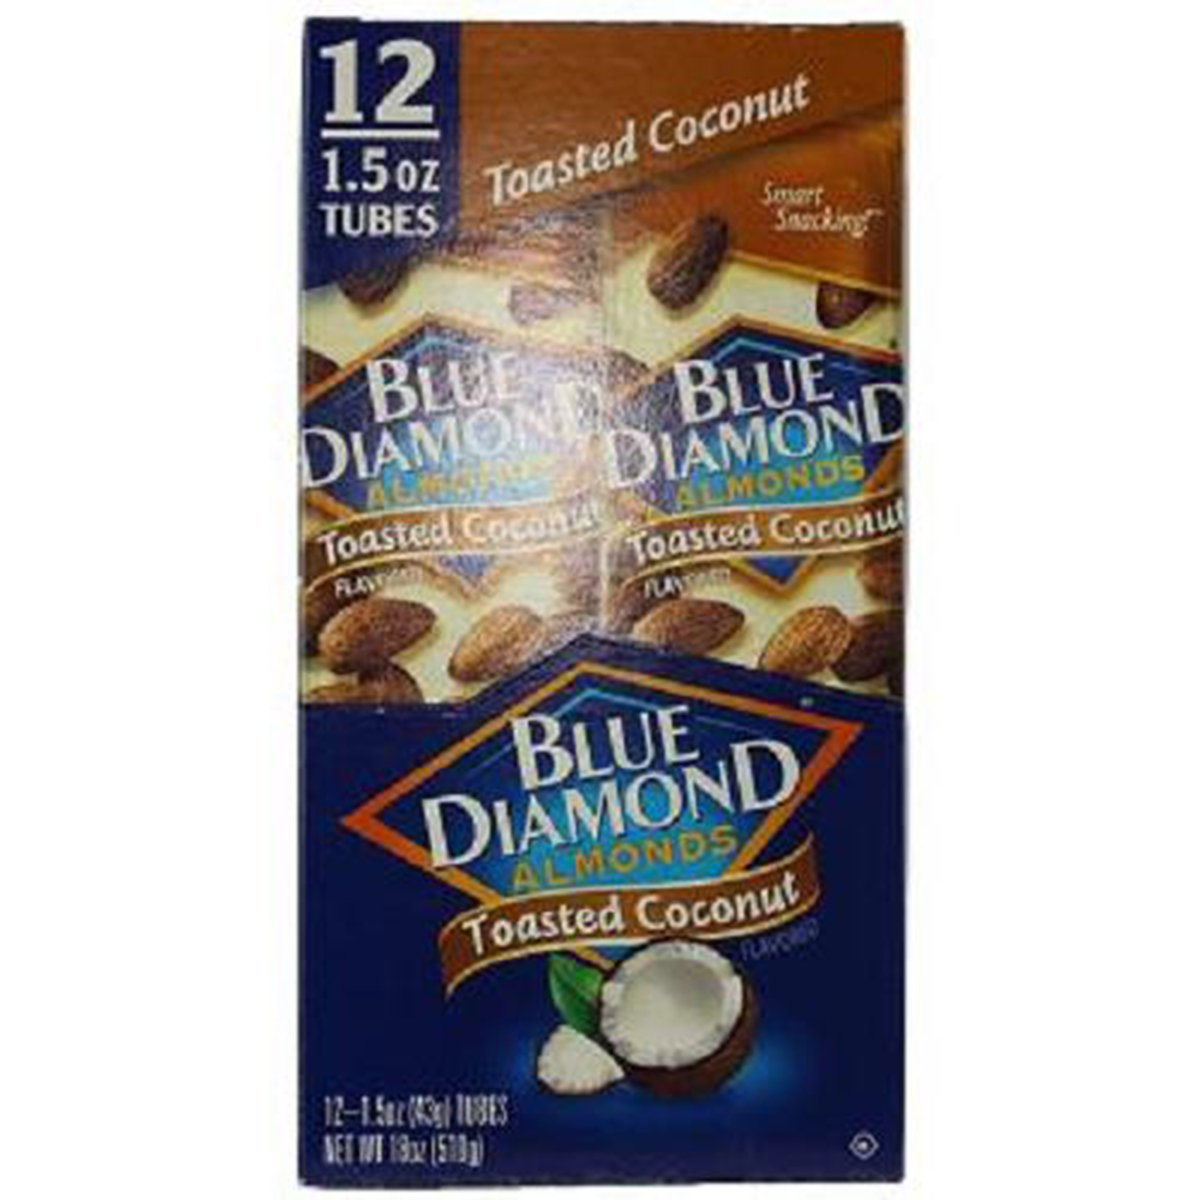 Blue Diam Almond Tube Toast Coconut 12Ct - Pack Of 12